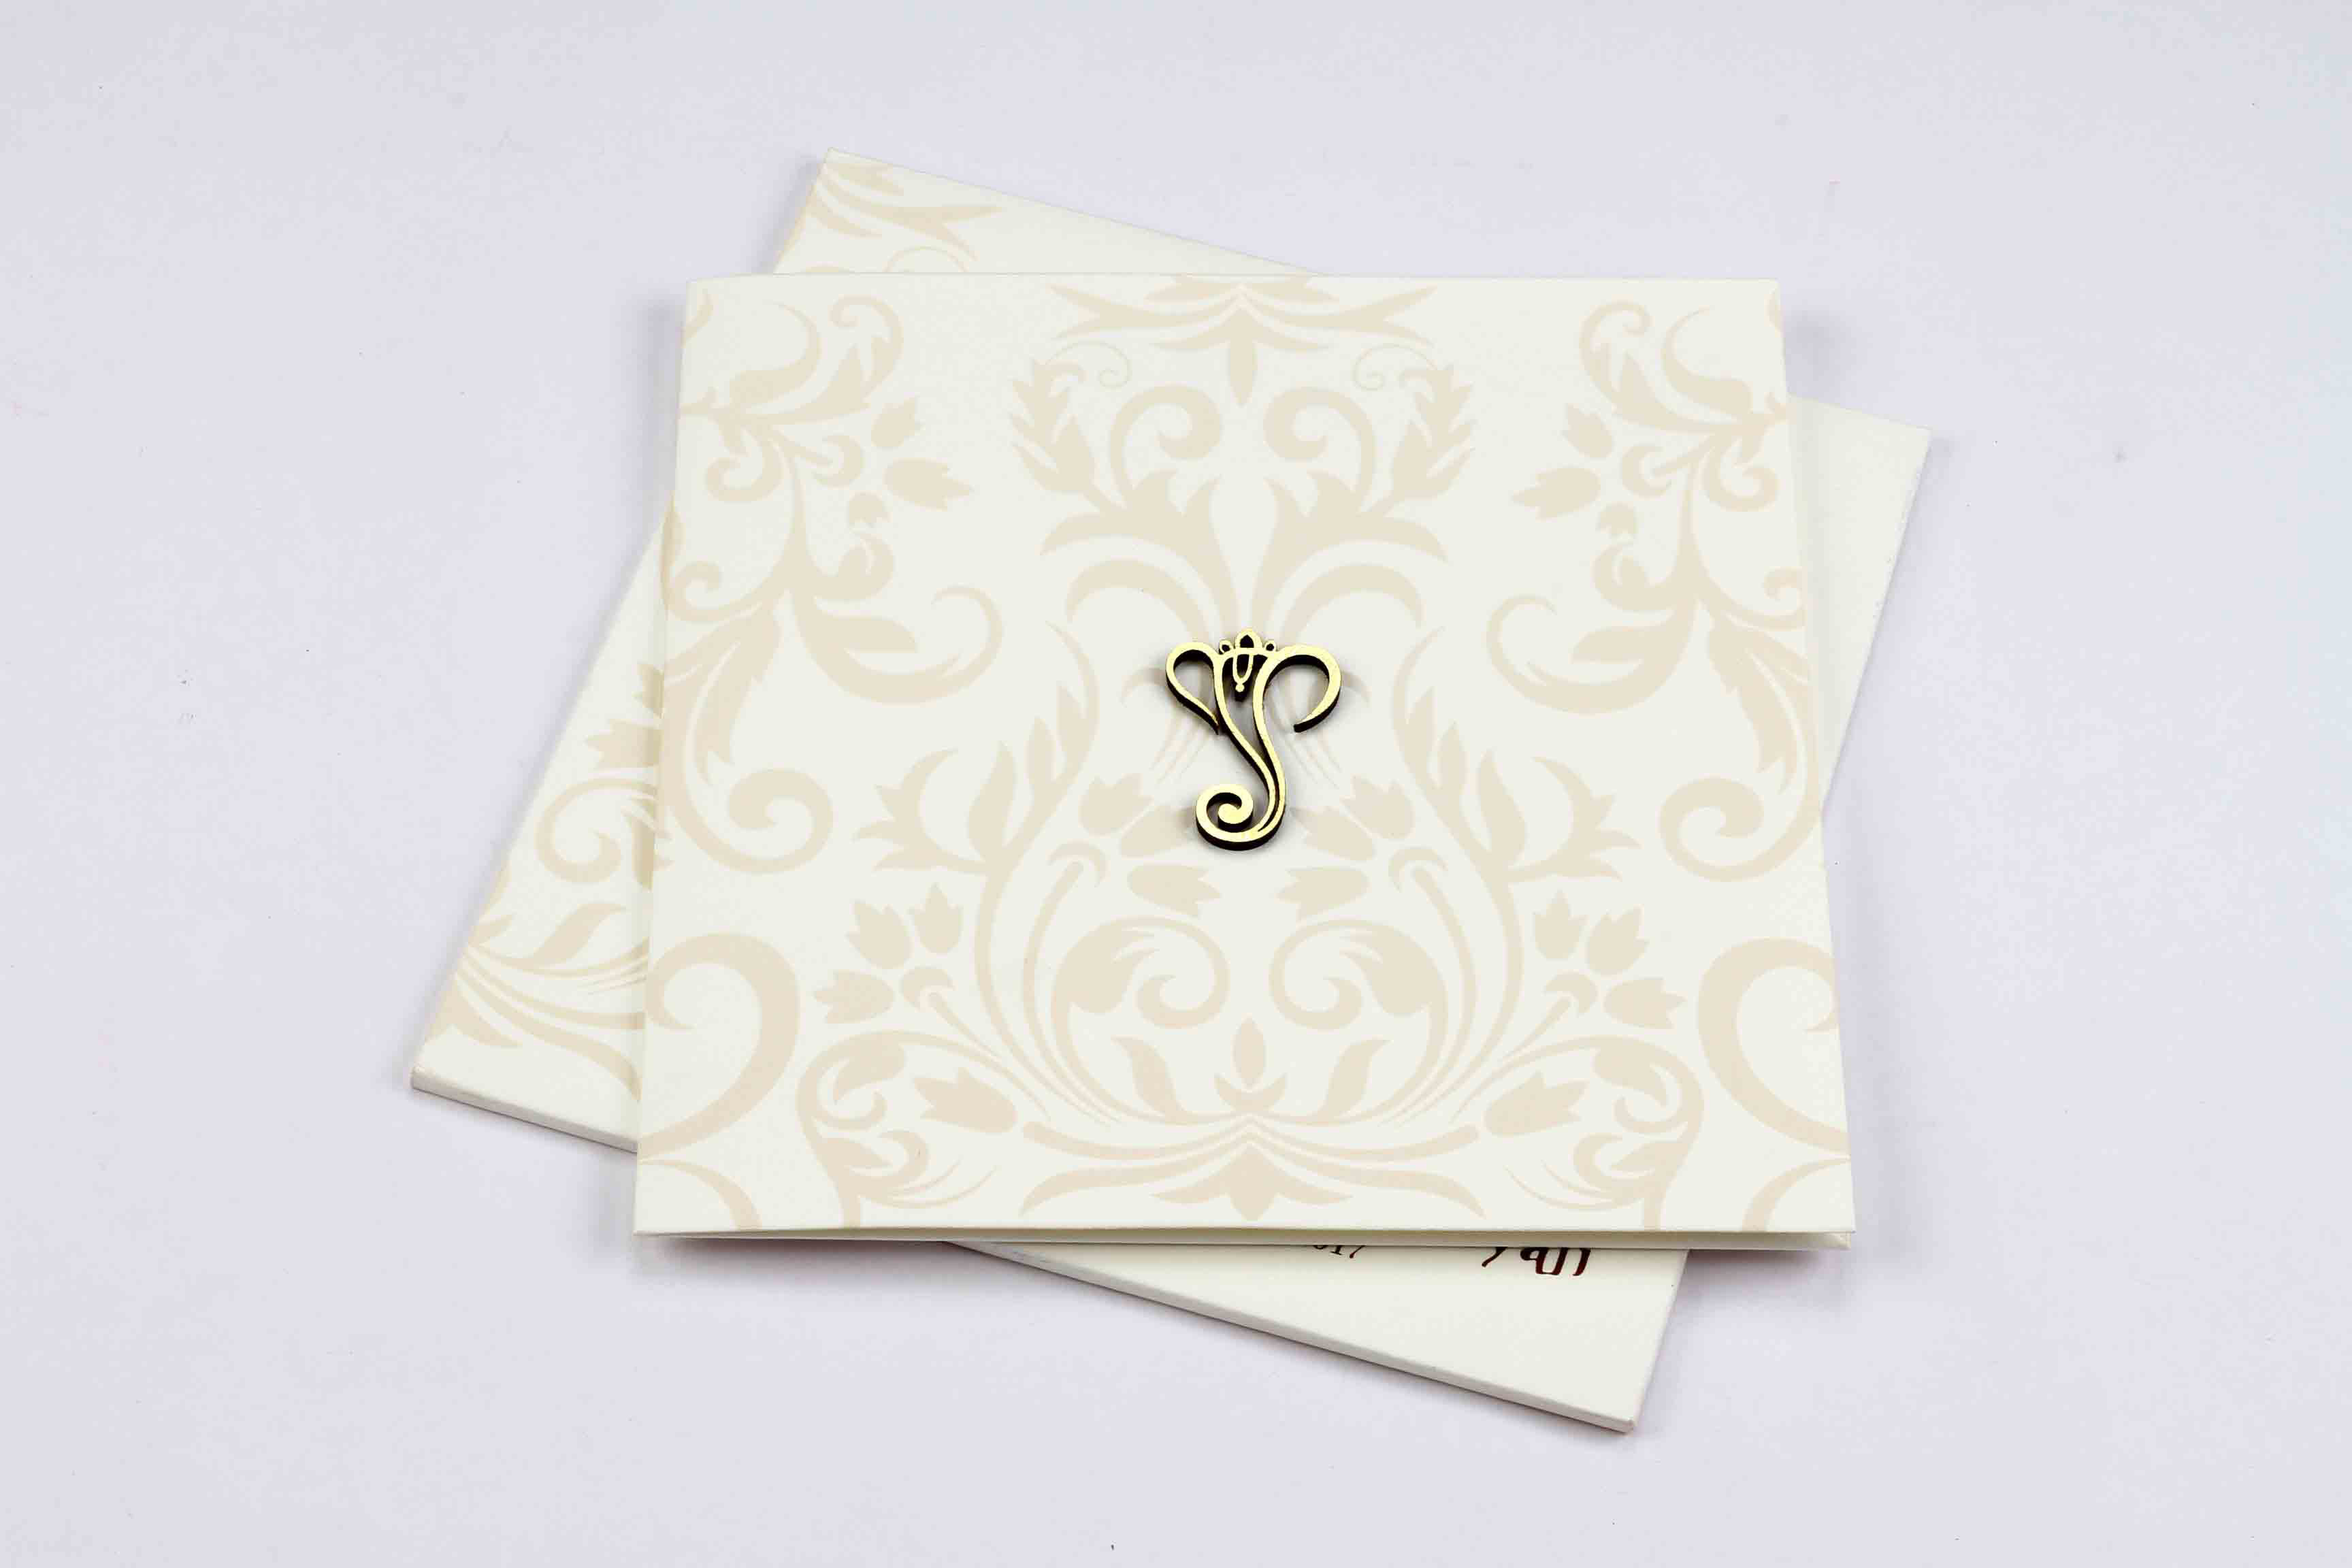 Hindu wedding invitation in off white with floral motifs in peach